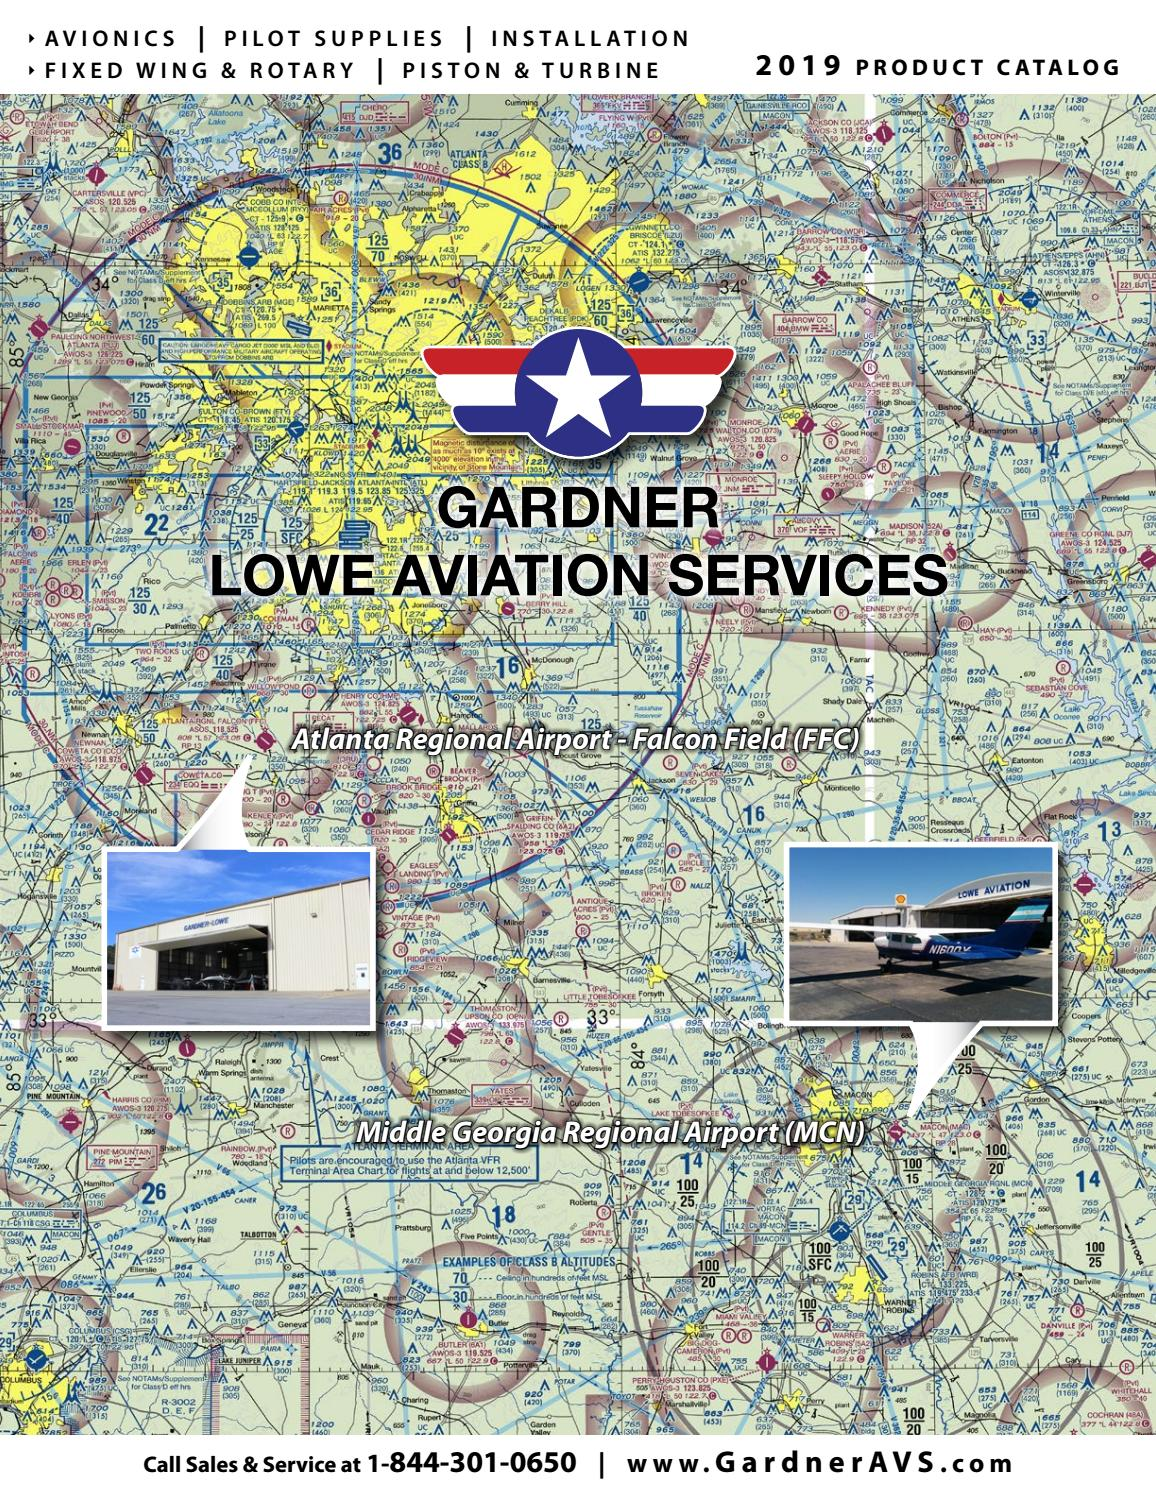 Gardner Lowe Aviation Services 2019 Product Catalog by m t